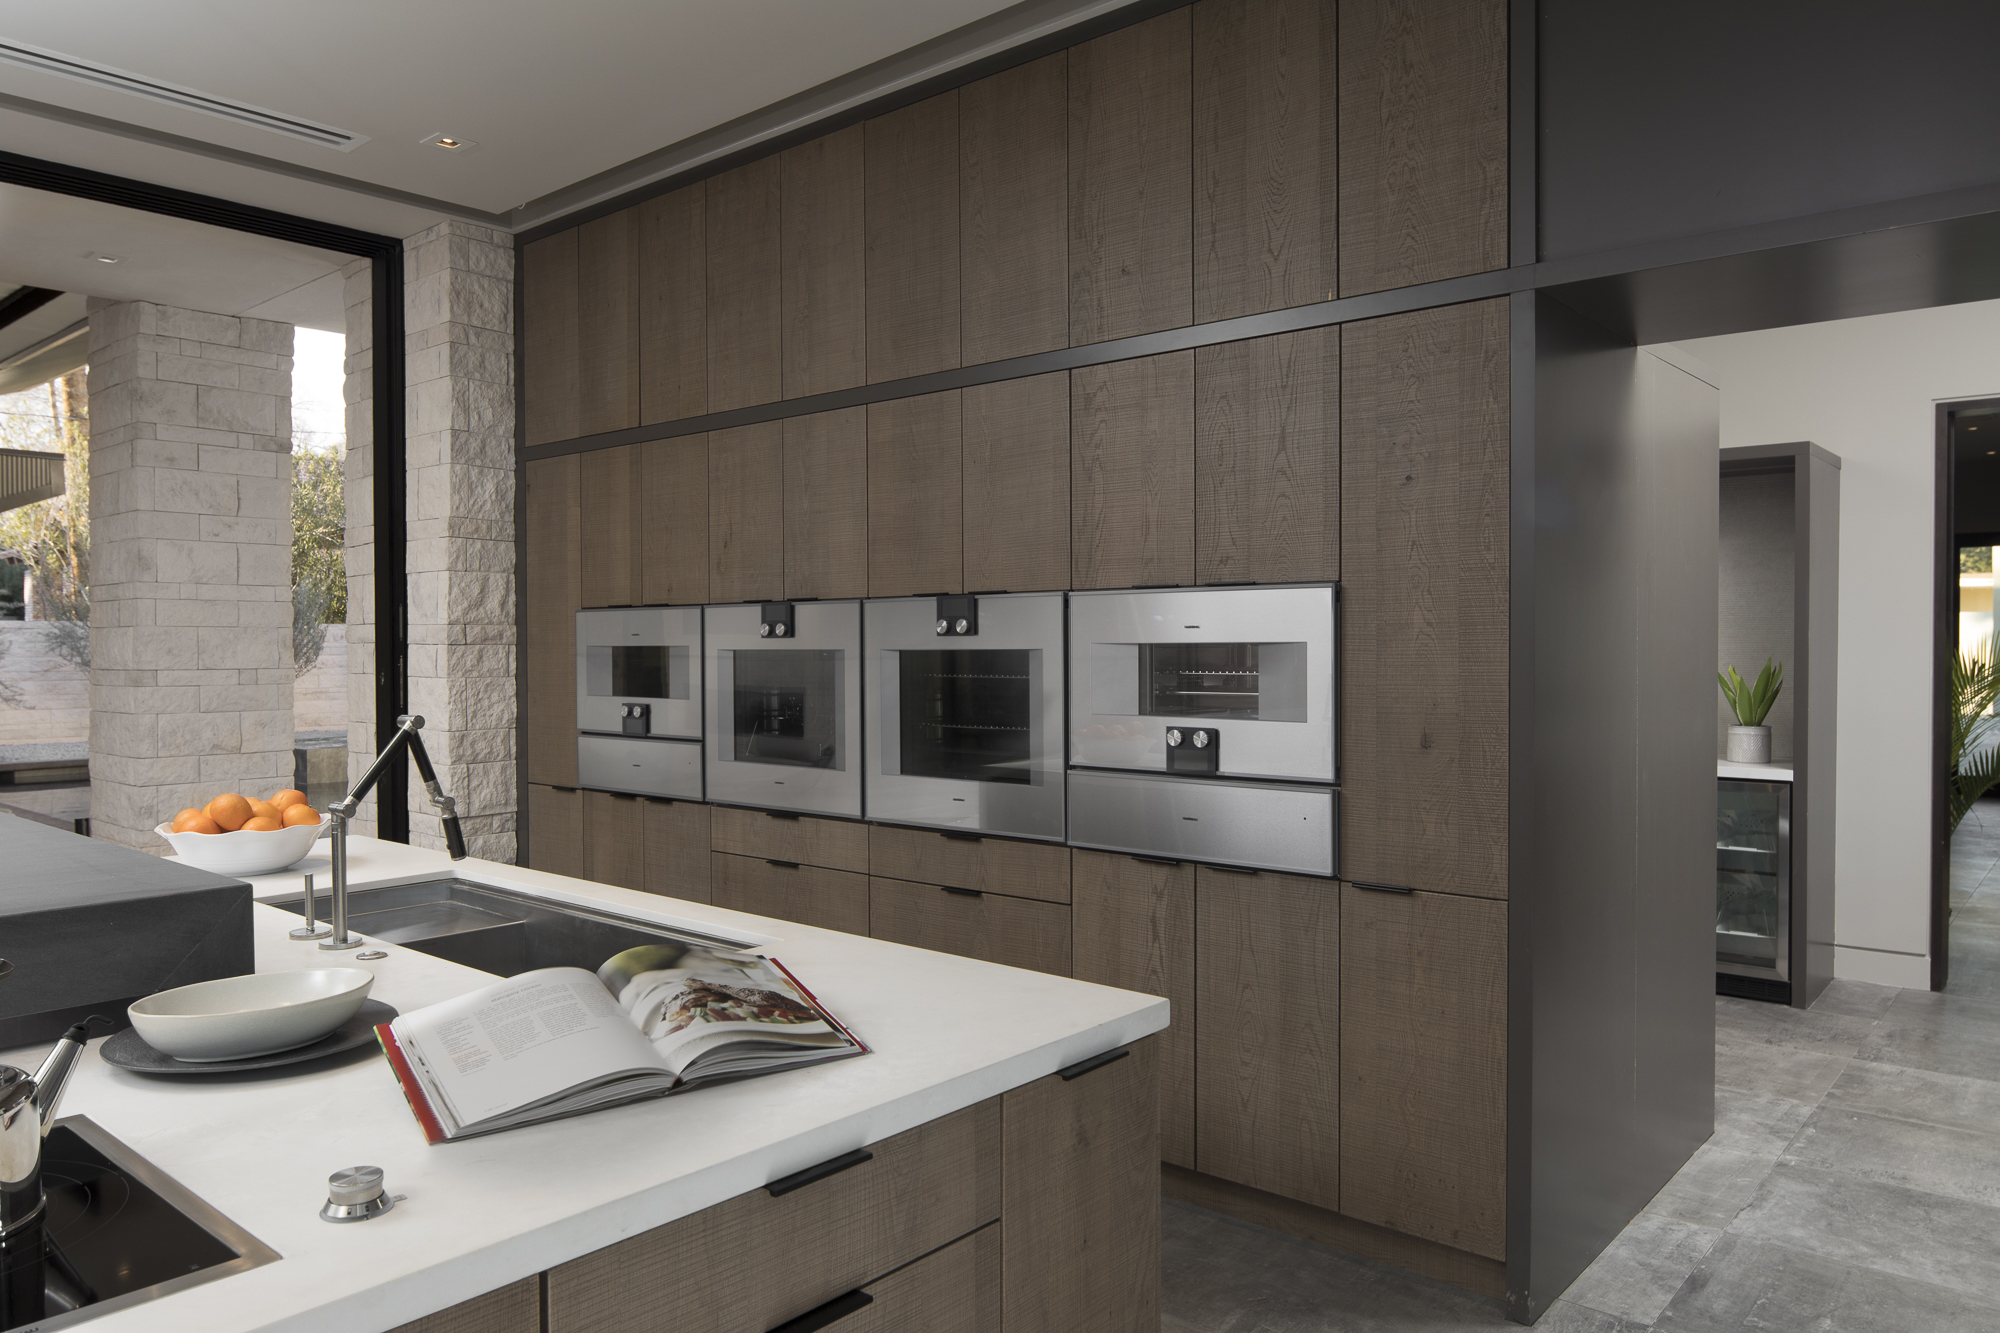 10 Kitchen Trends For 2019 Put Away The Clutter Pull Out